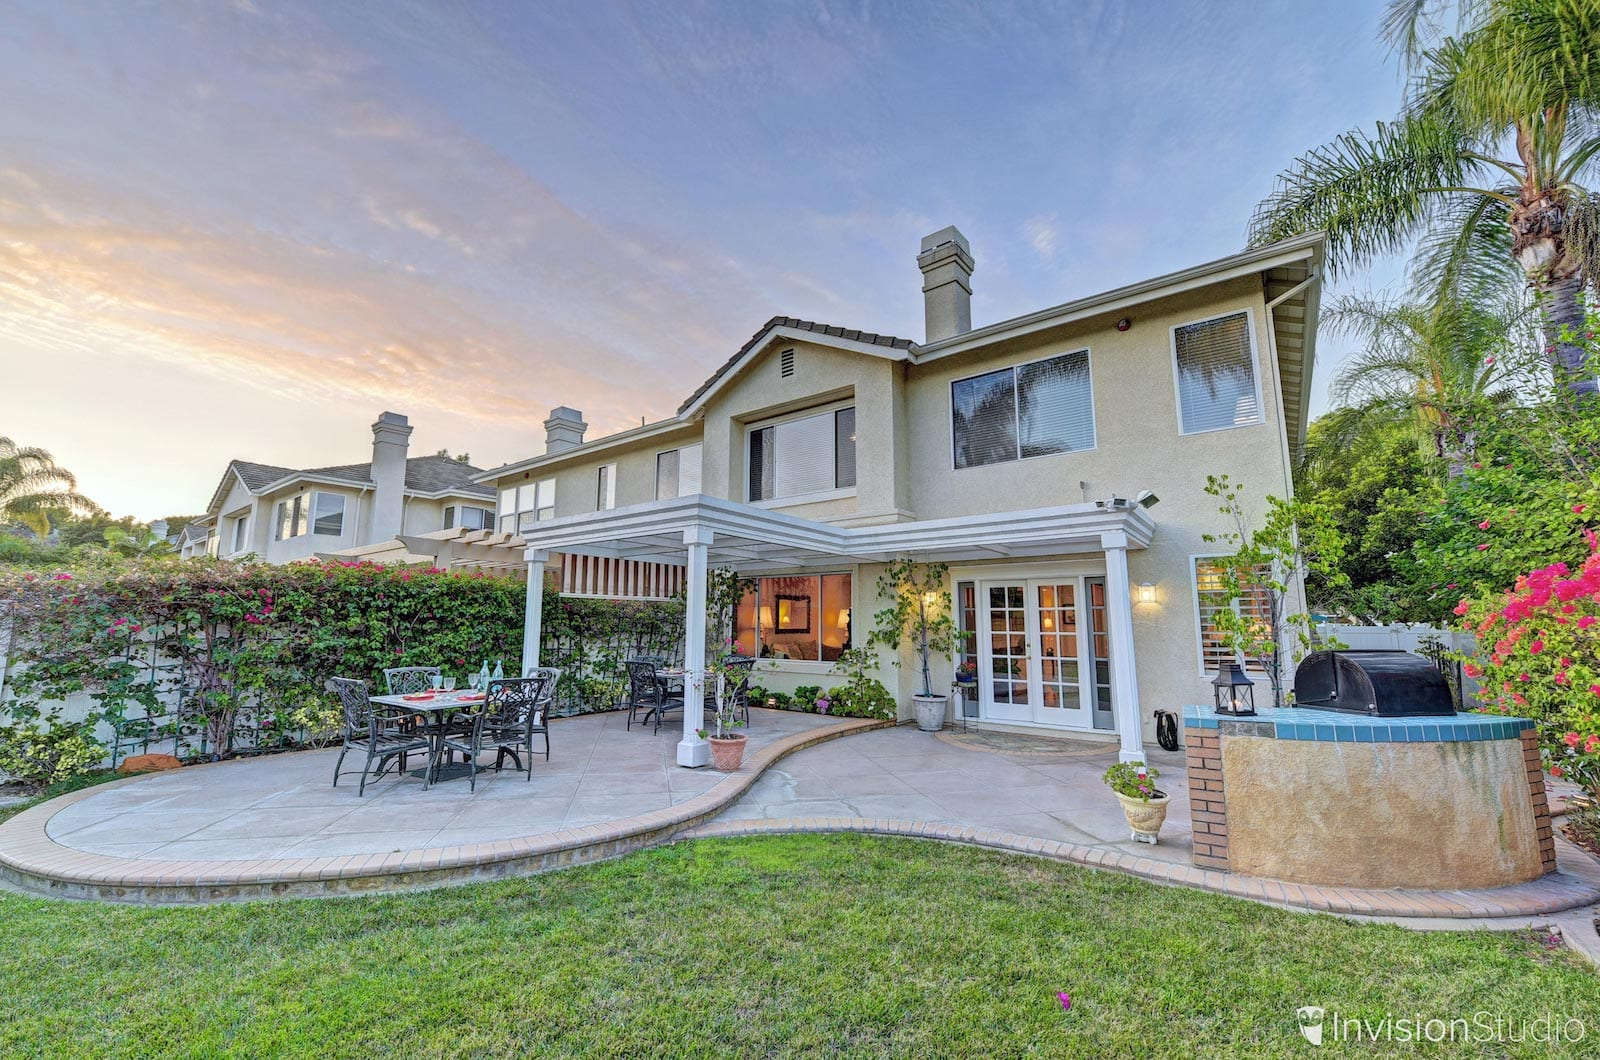 Escondido 360 Panoramic Photography Services | Escondido Drone Aerial Photography Services | Escondido Architectural Photography Services | Escondido Matterport 3D House Tours